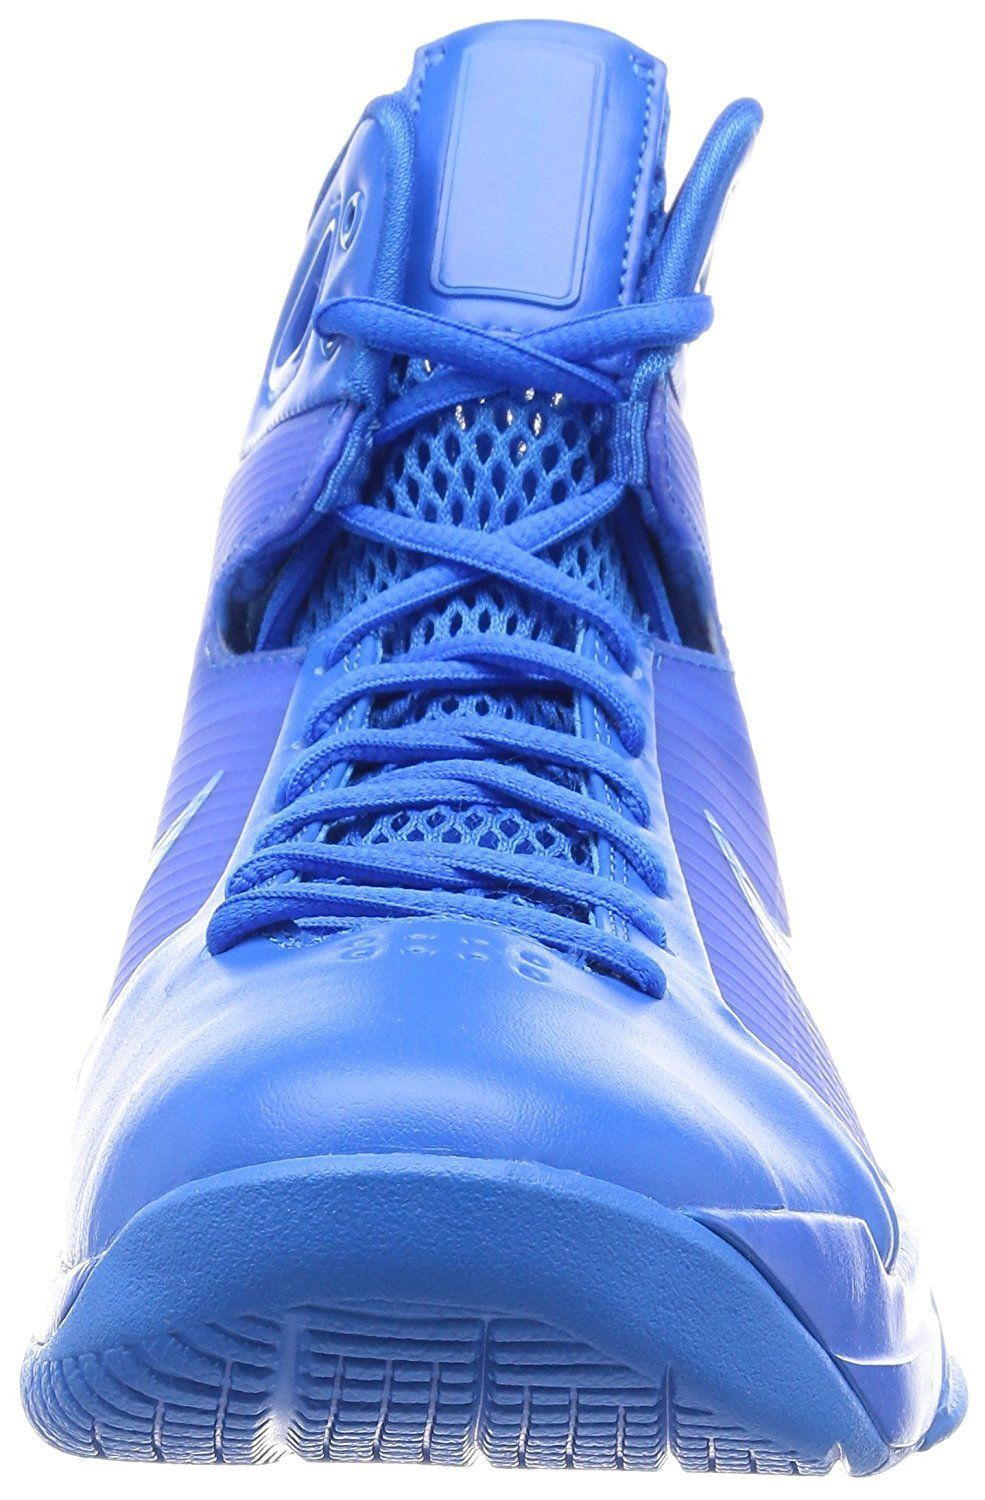 online store e1e67 22866 Men s Nike HYPERDUNK  08 Basketball Shoes, 820321 400 Sizes 8-15 Photo Blue